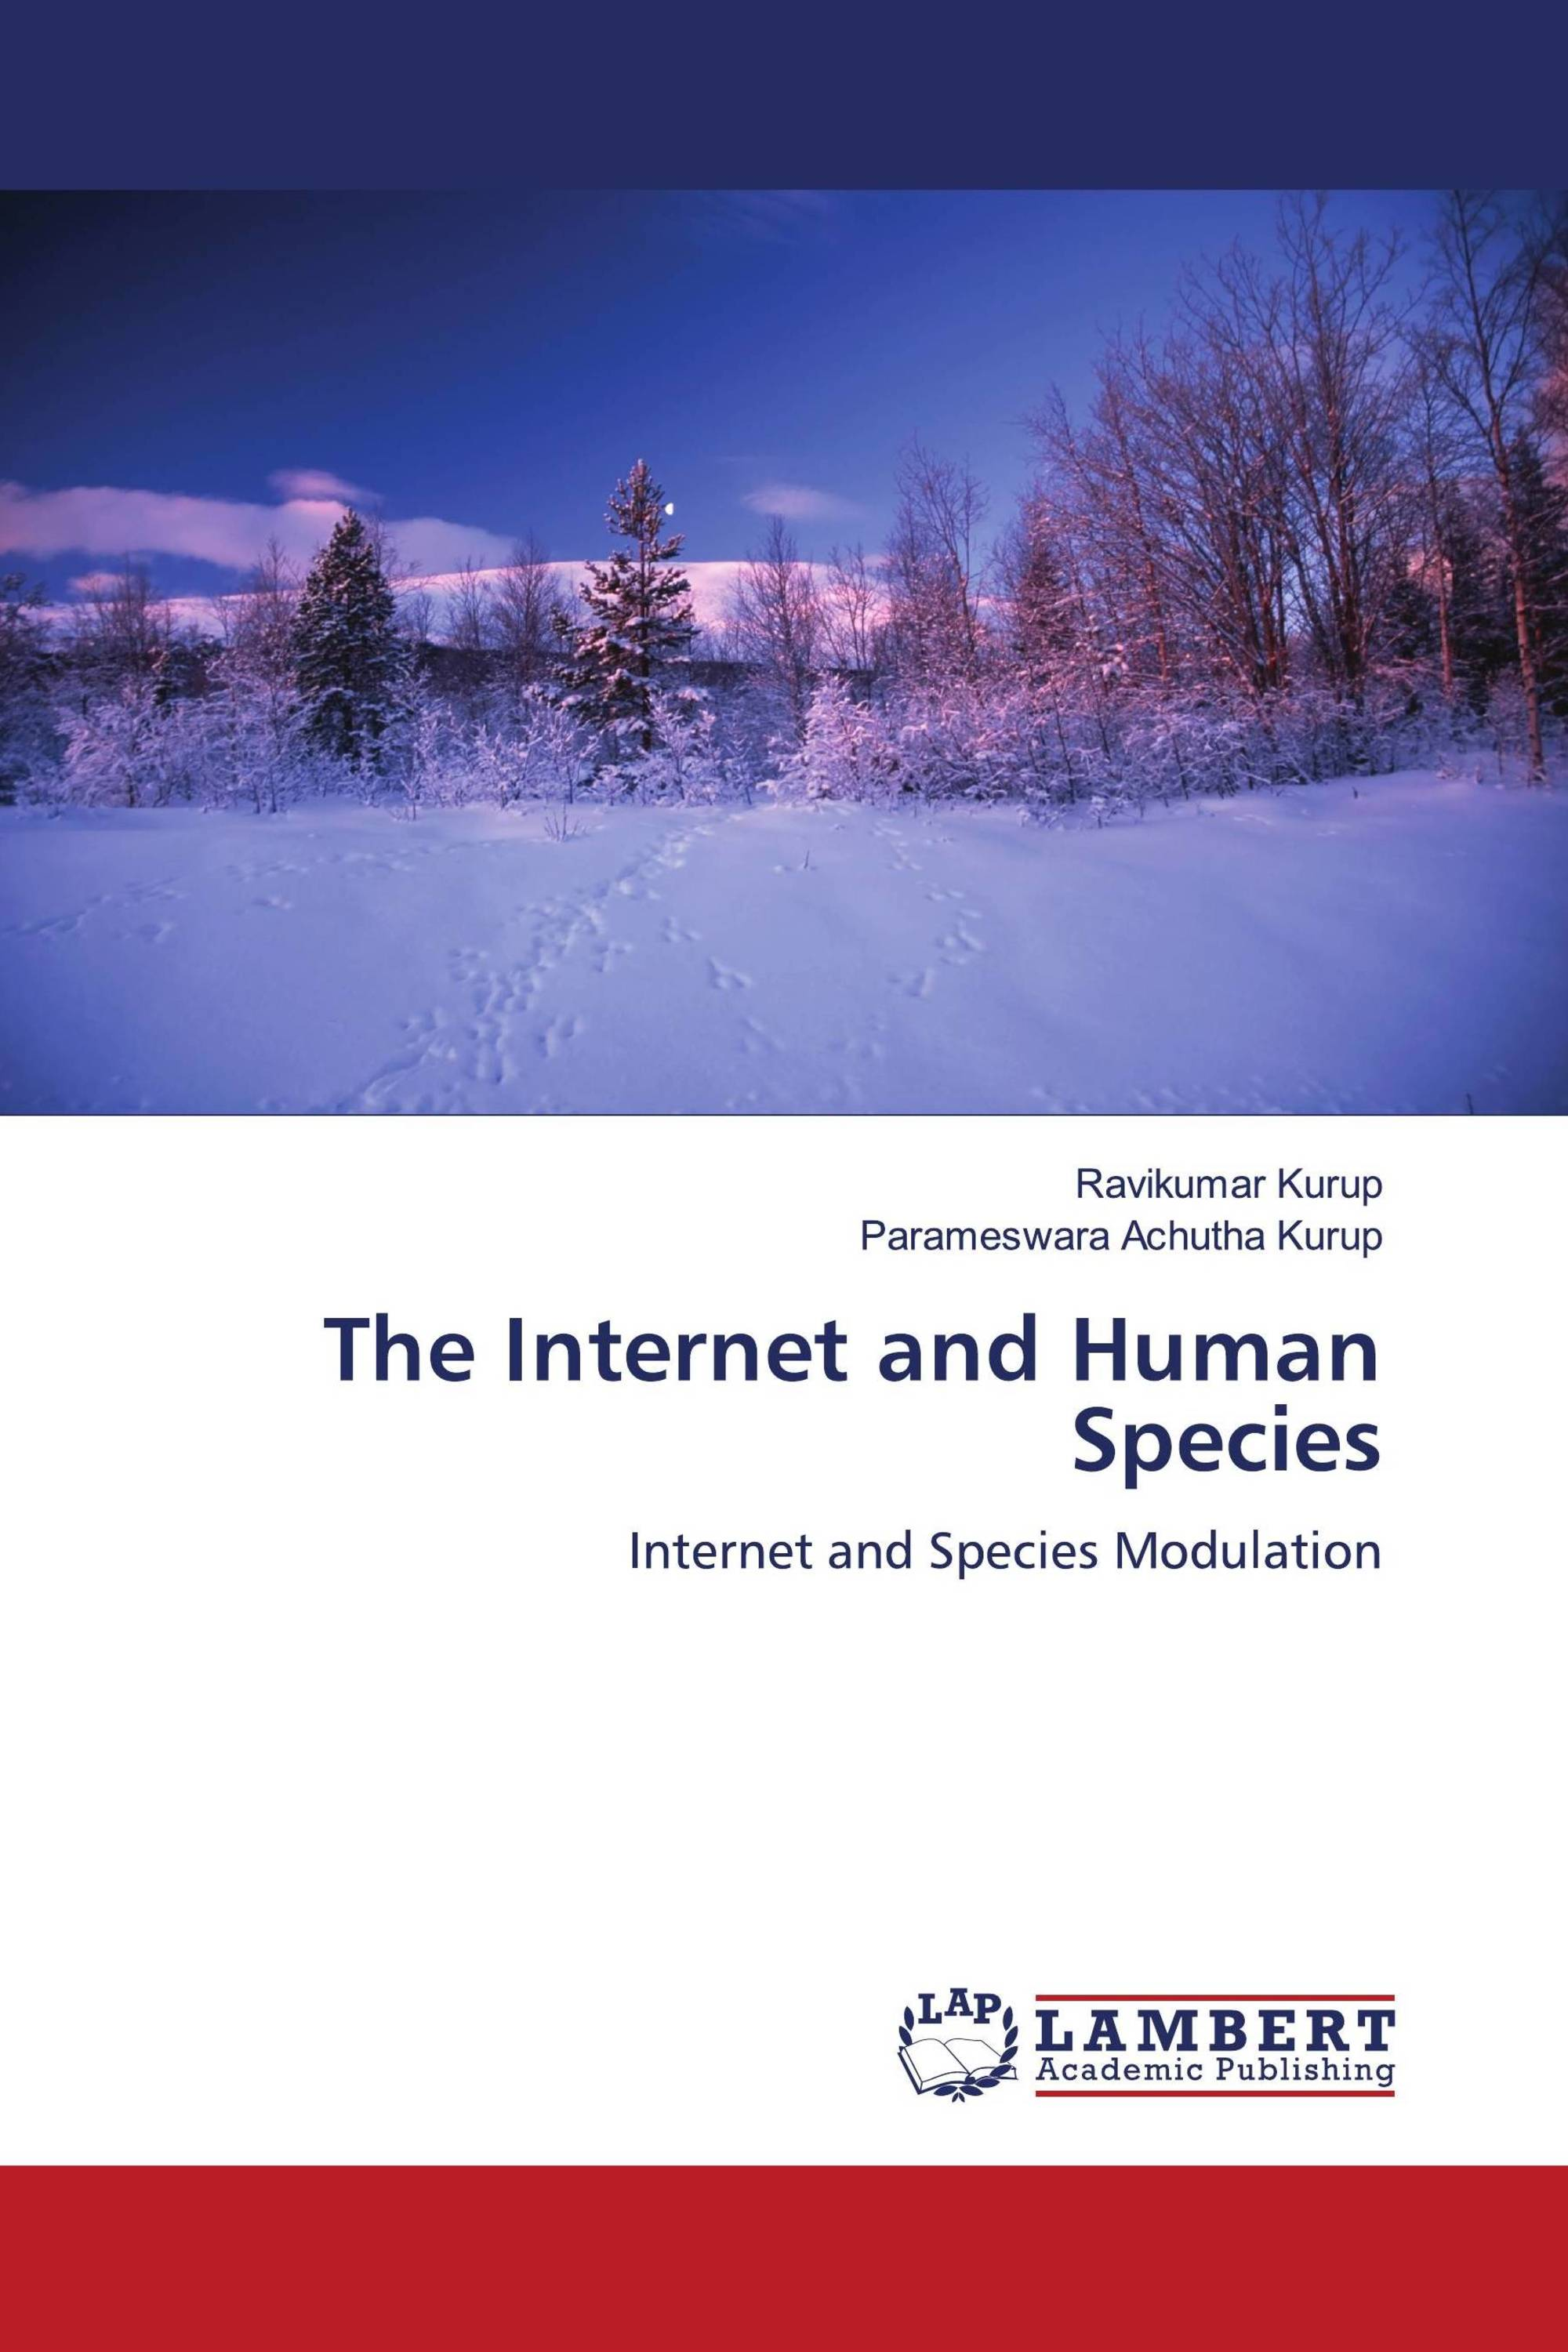 The Internet and Human Species